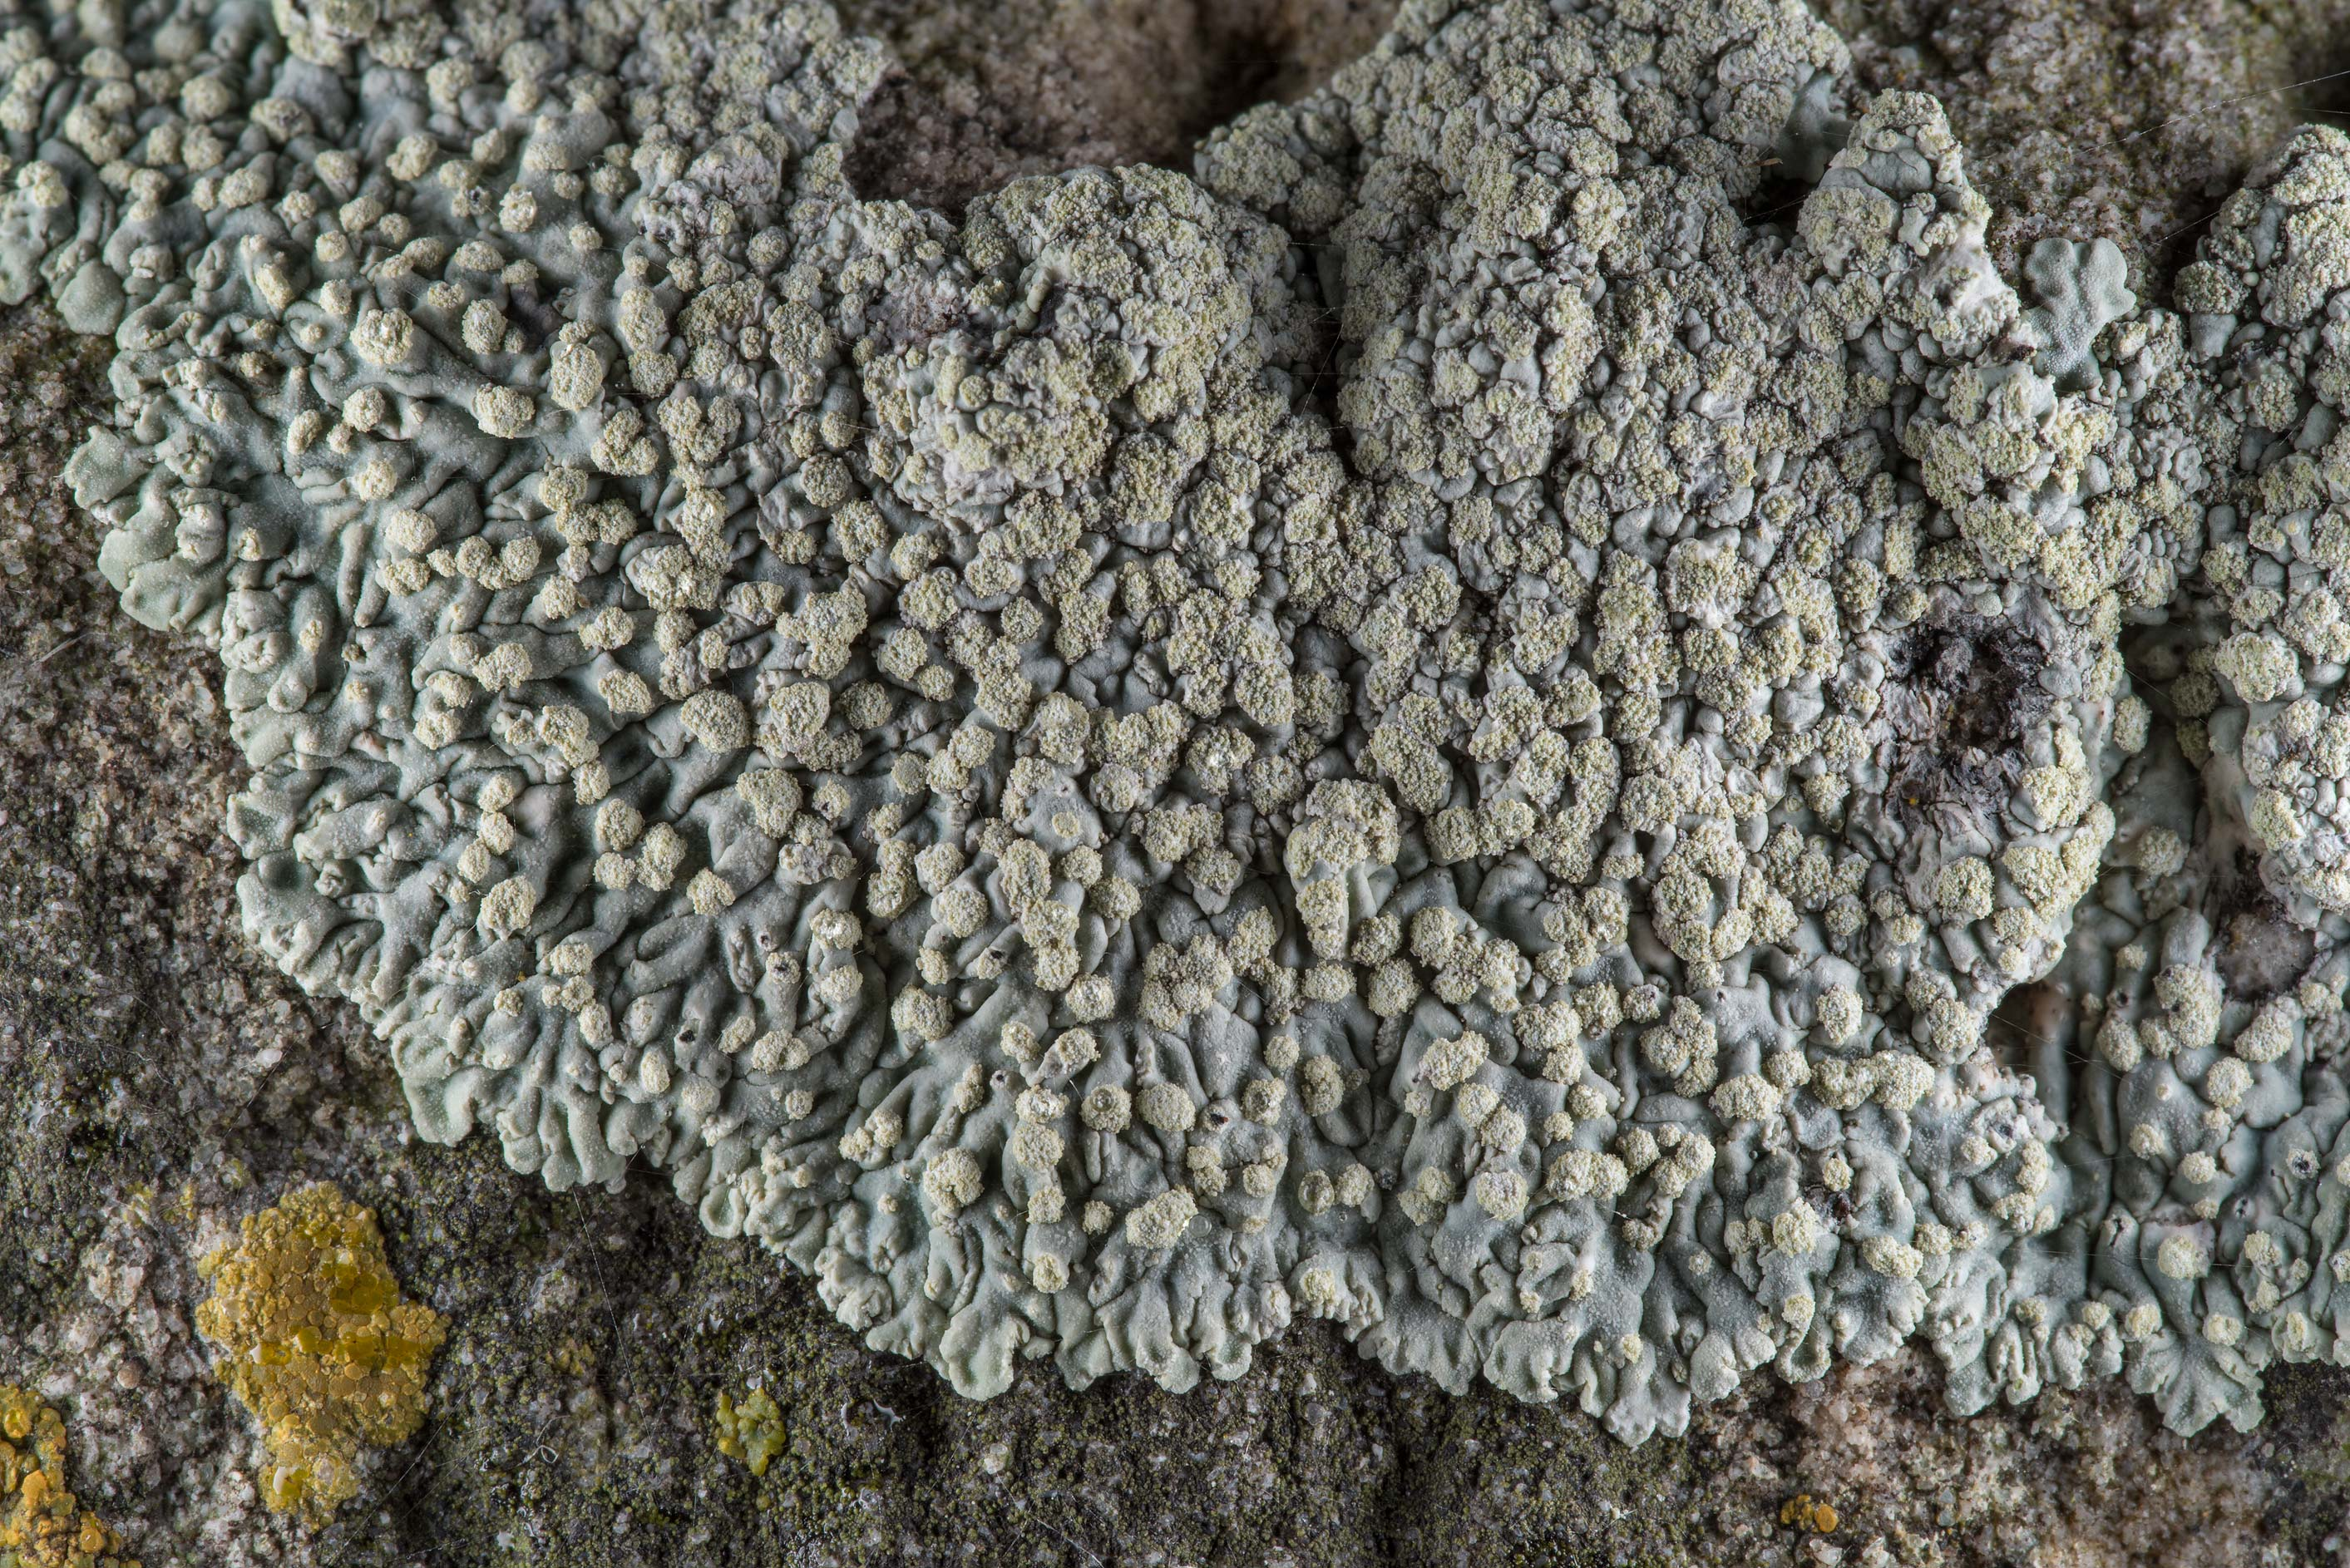 Buttoned rosette lichen (Pyxine) on limestone in...Cemetery near Independence. Texas